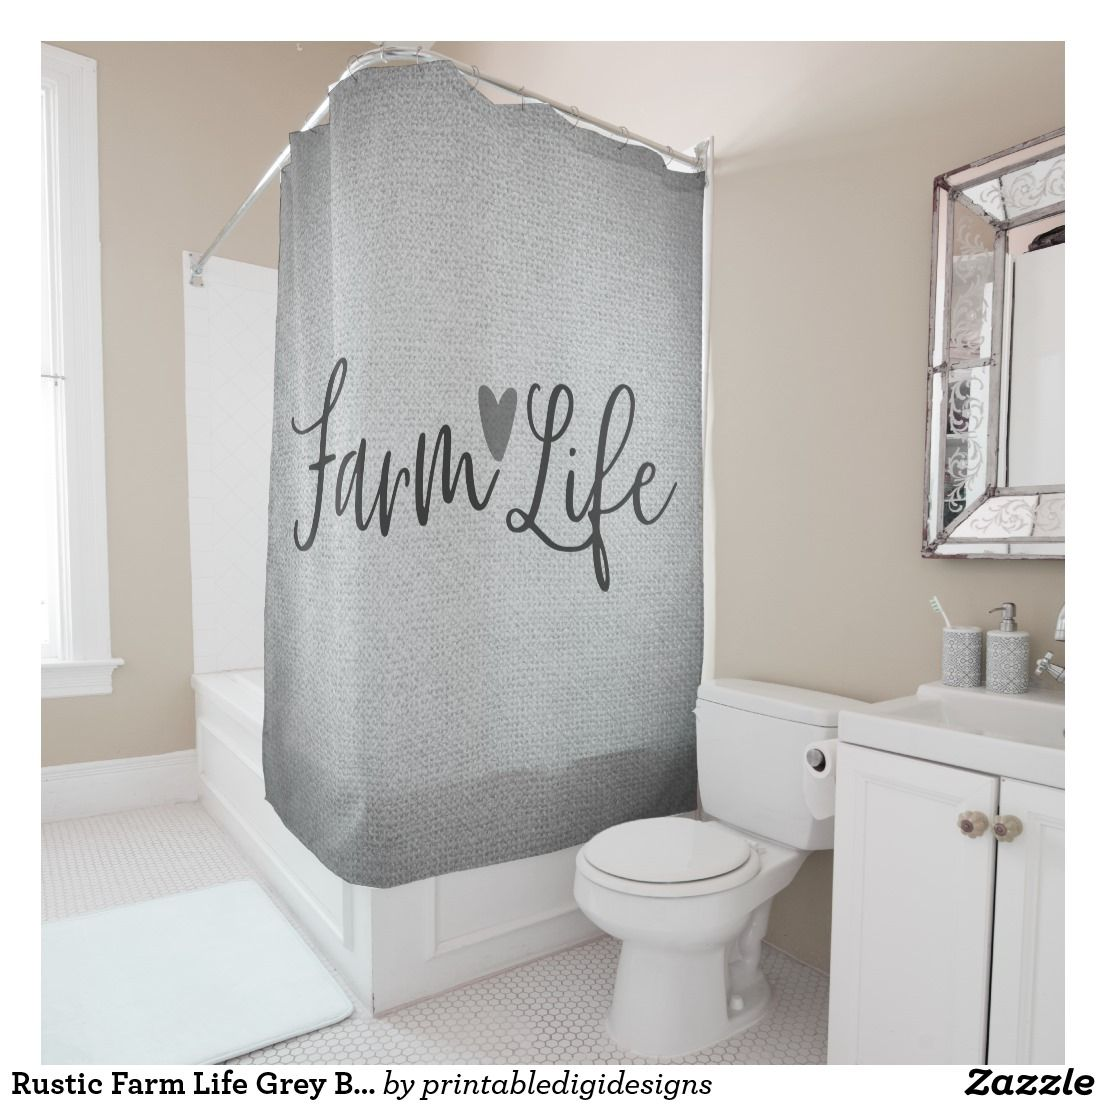 Rustic Farm Life Grey Burlap Texture Whimsical Shower Curtain